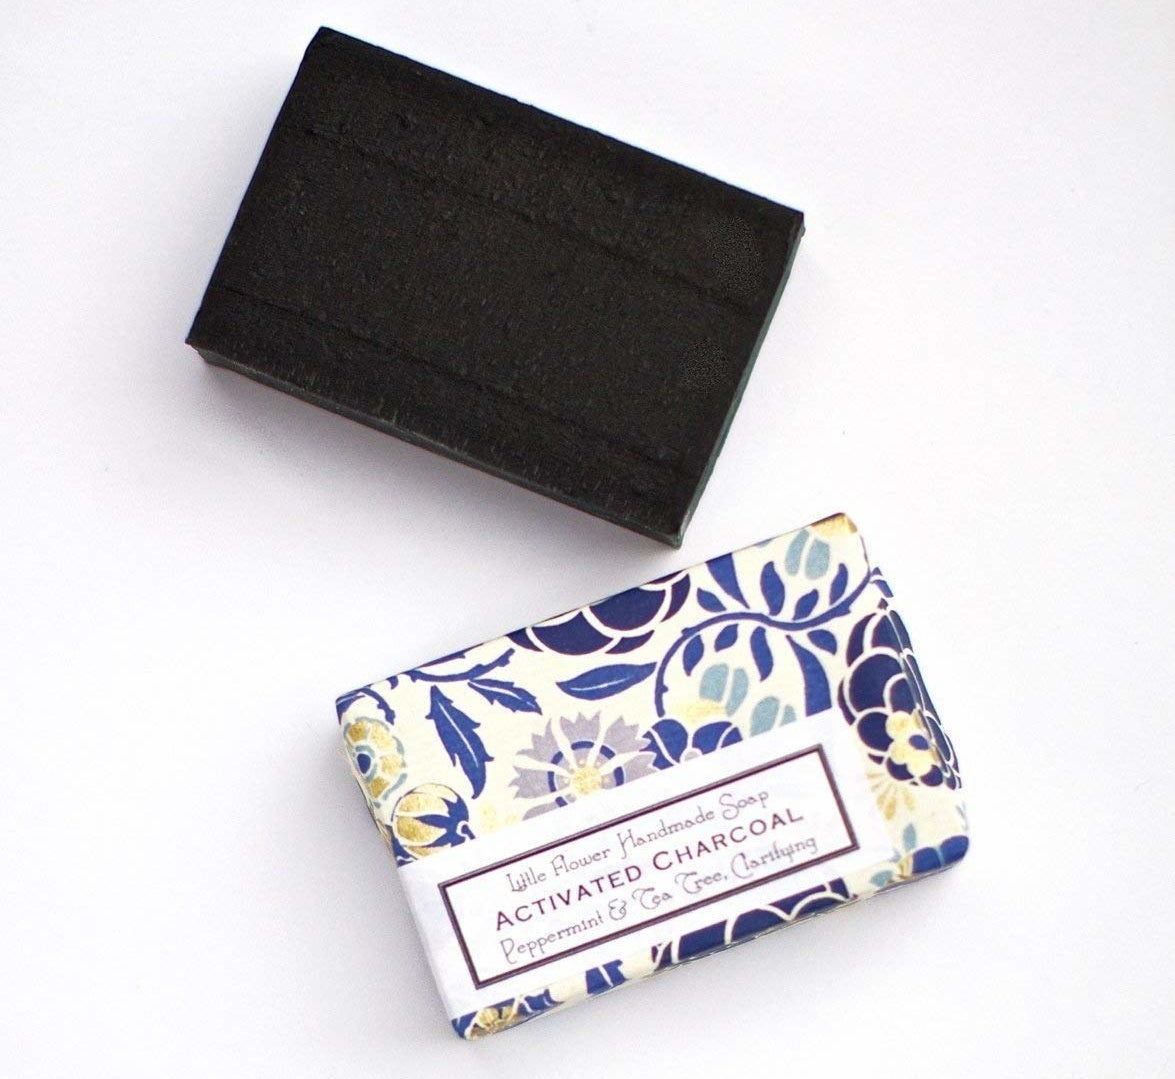 the black charcoal soap bar and the pretty packaging the soap comes in